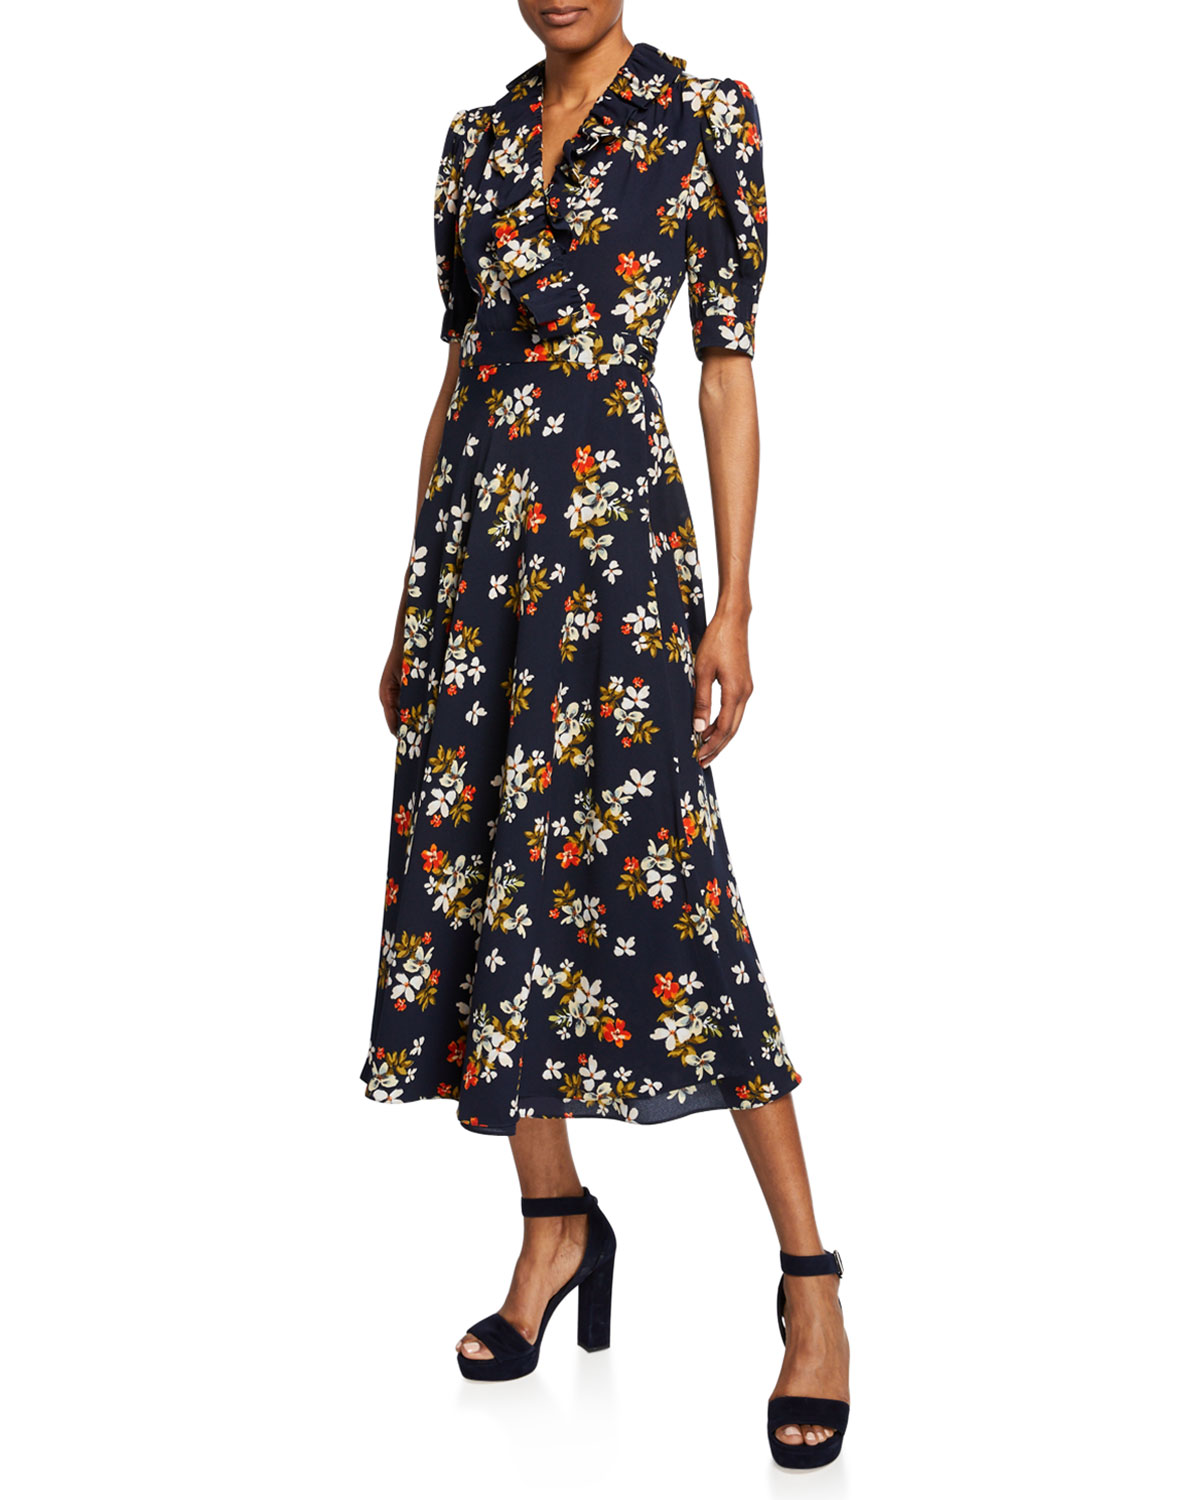 Floral Print Elbow Sleeve Midi Wrap Dress by Jill Jill Stuart